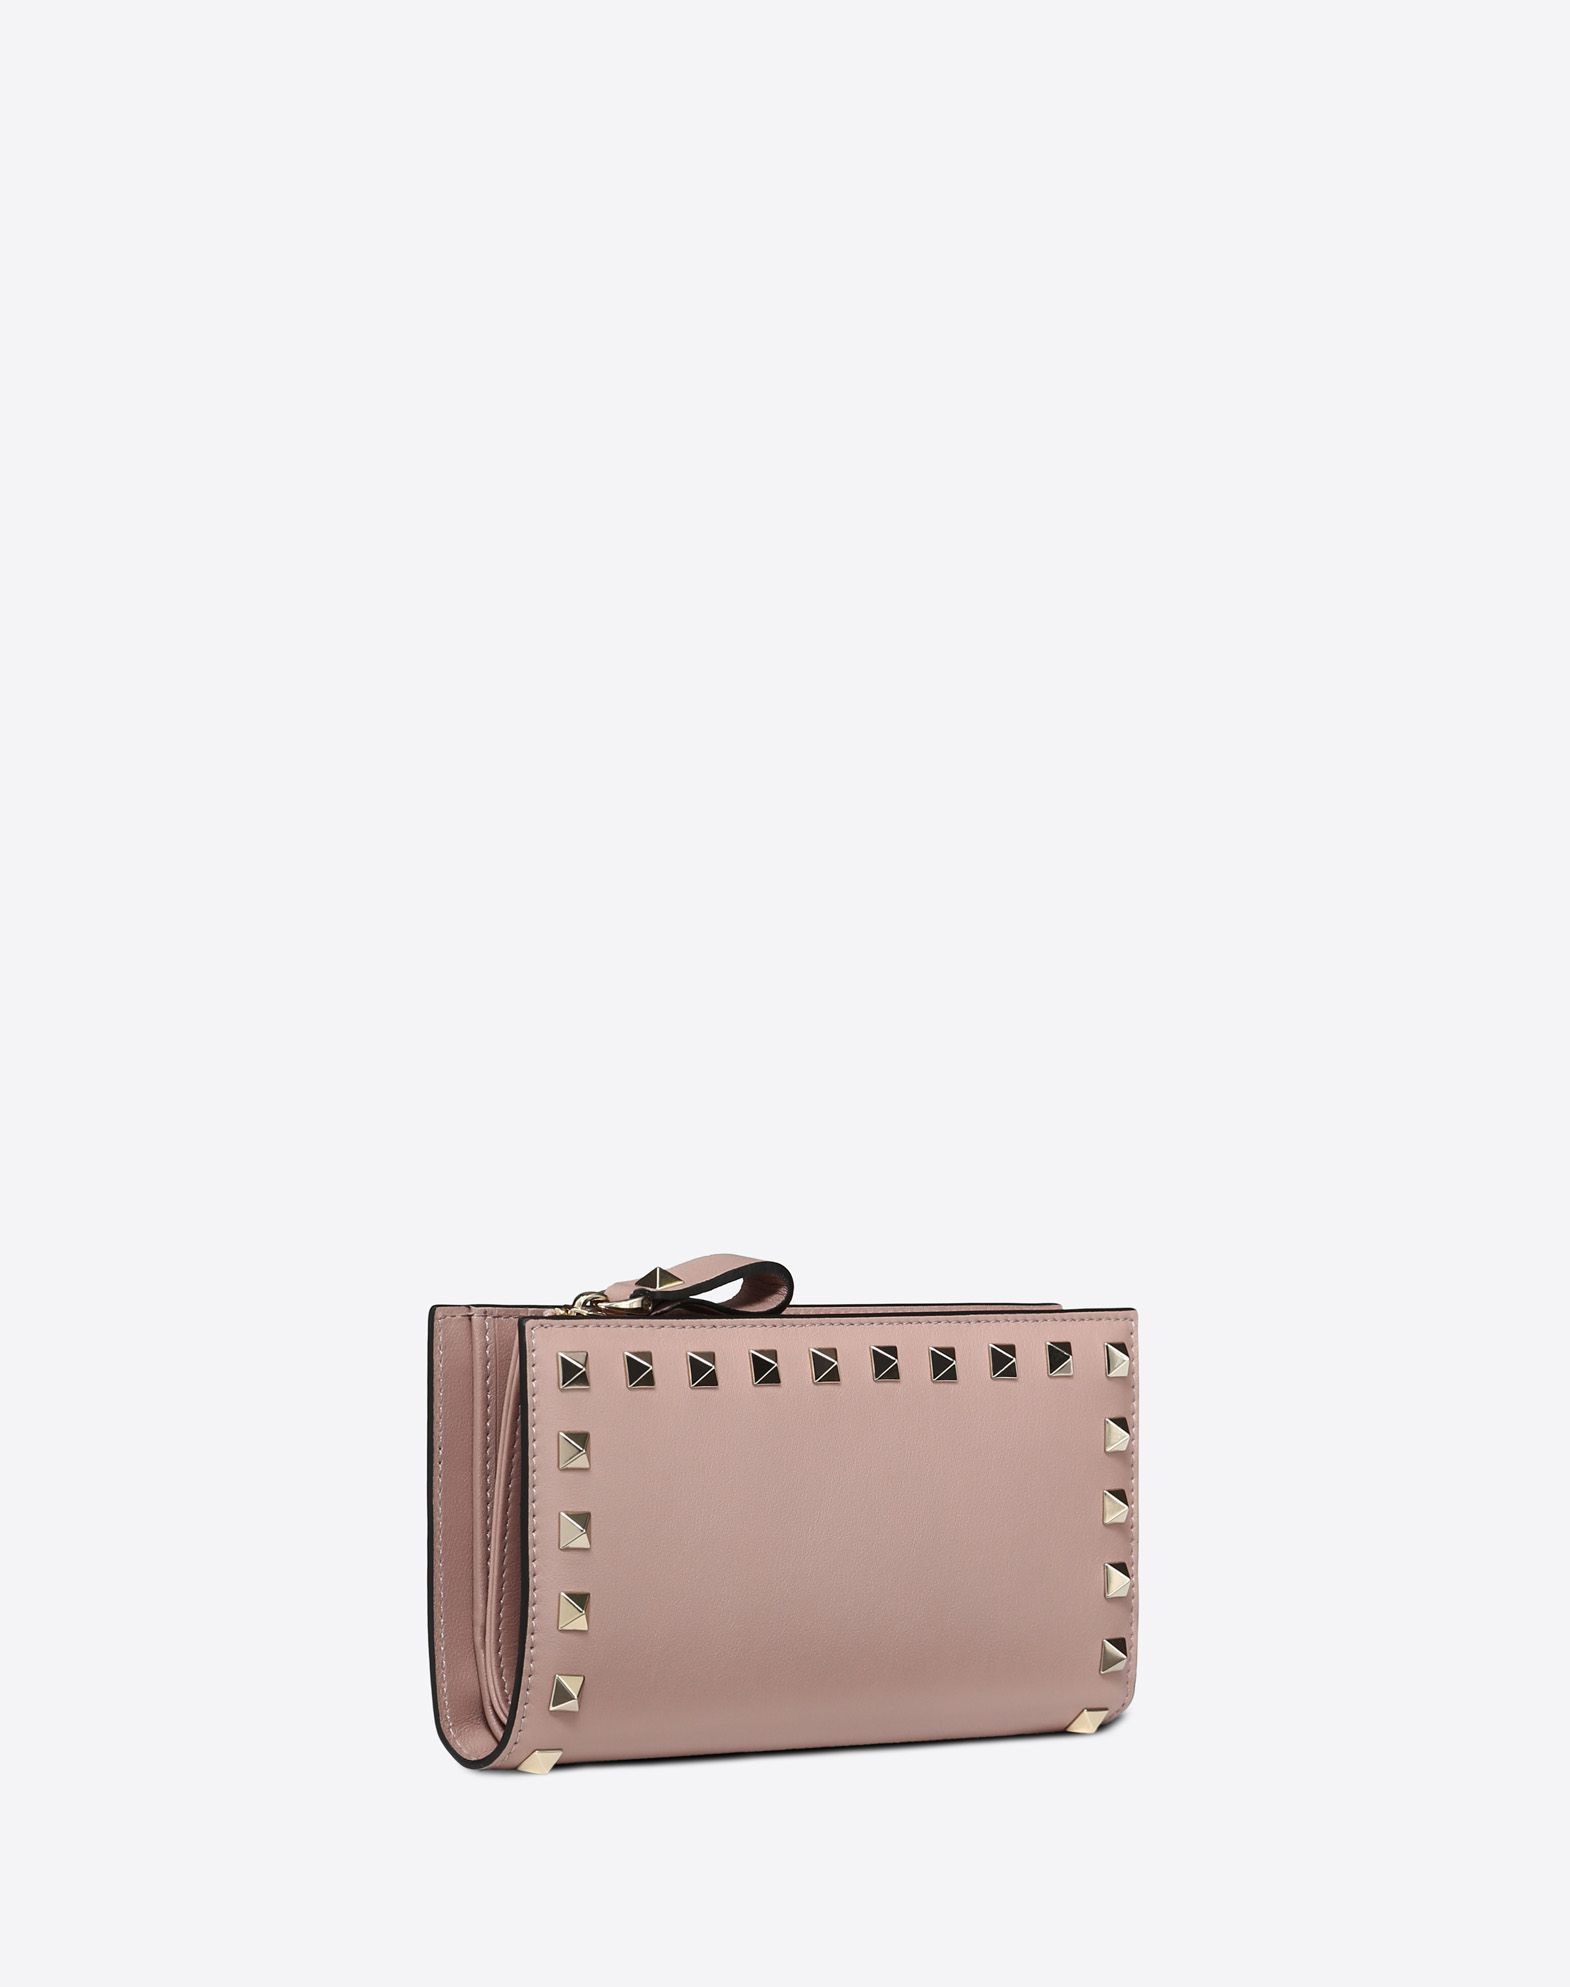 VIDA Leather Statement Clutch - alicia by VIDA sS6VkHoG